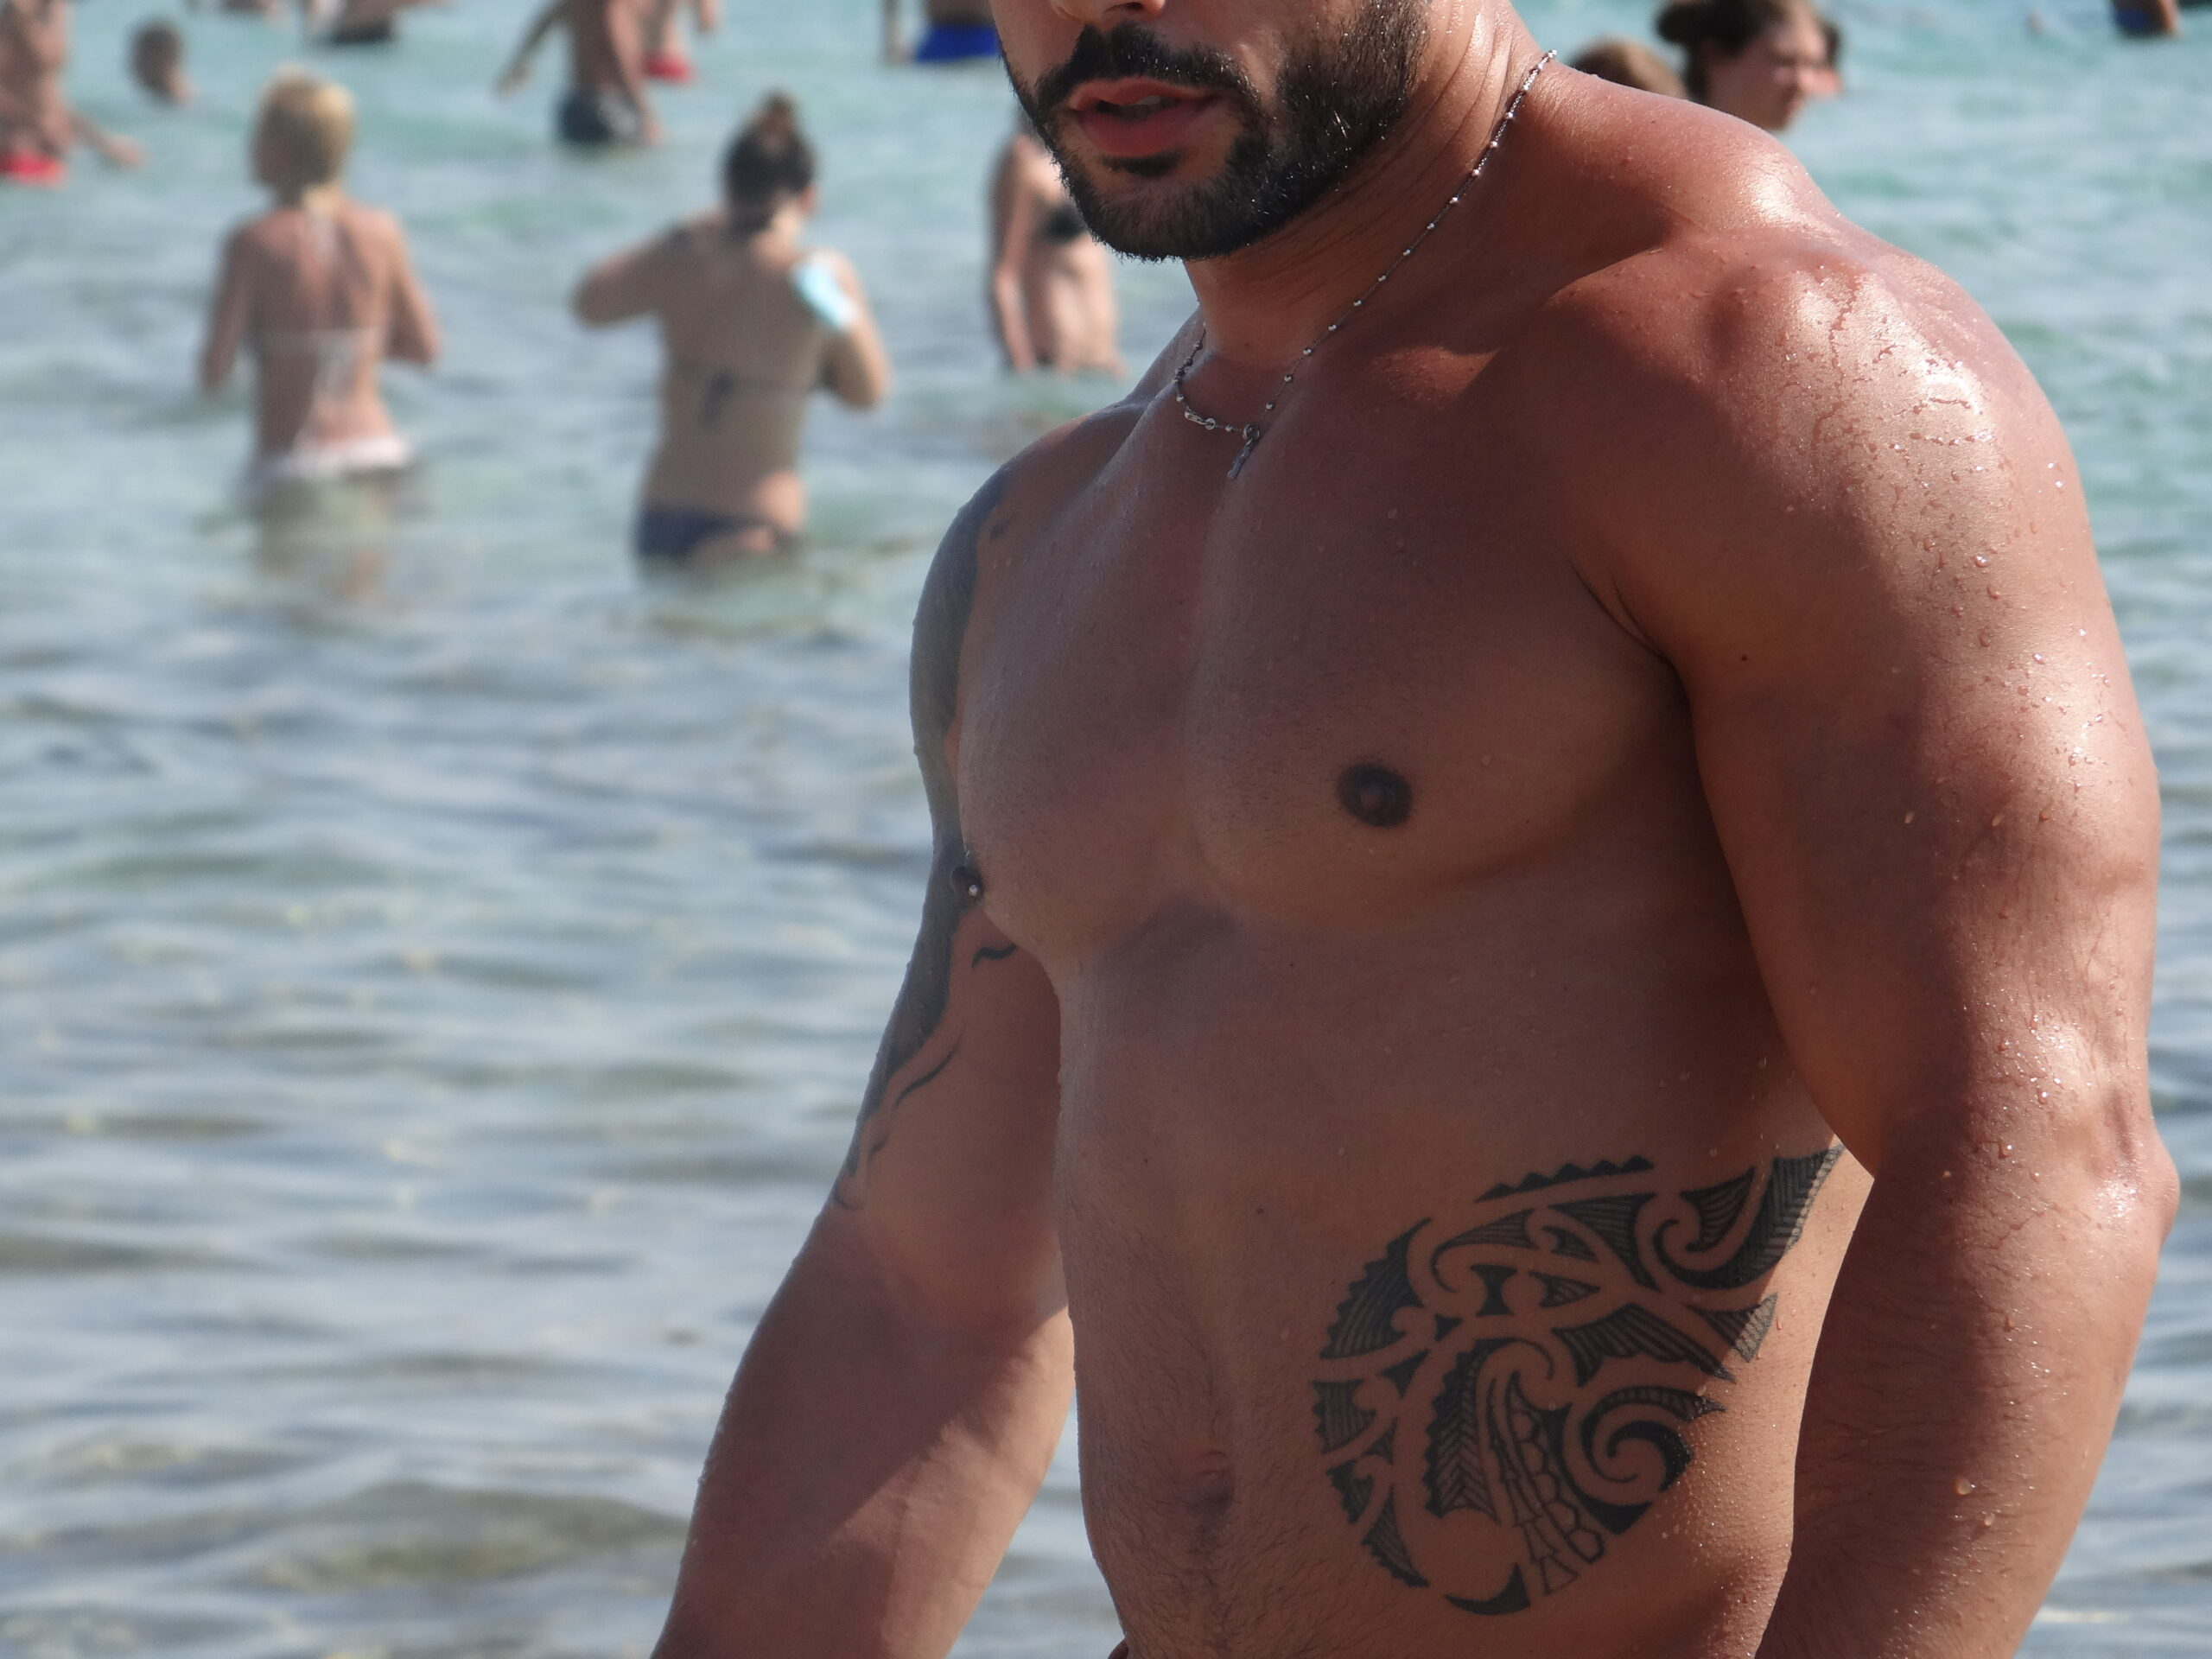 Gay Puglia - the Big Gay Podcast from Puglia. Serving up Puglia's finest food and destination recommendations. Hot Italian guys are always found on Puglia's beaches.